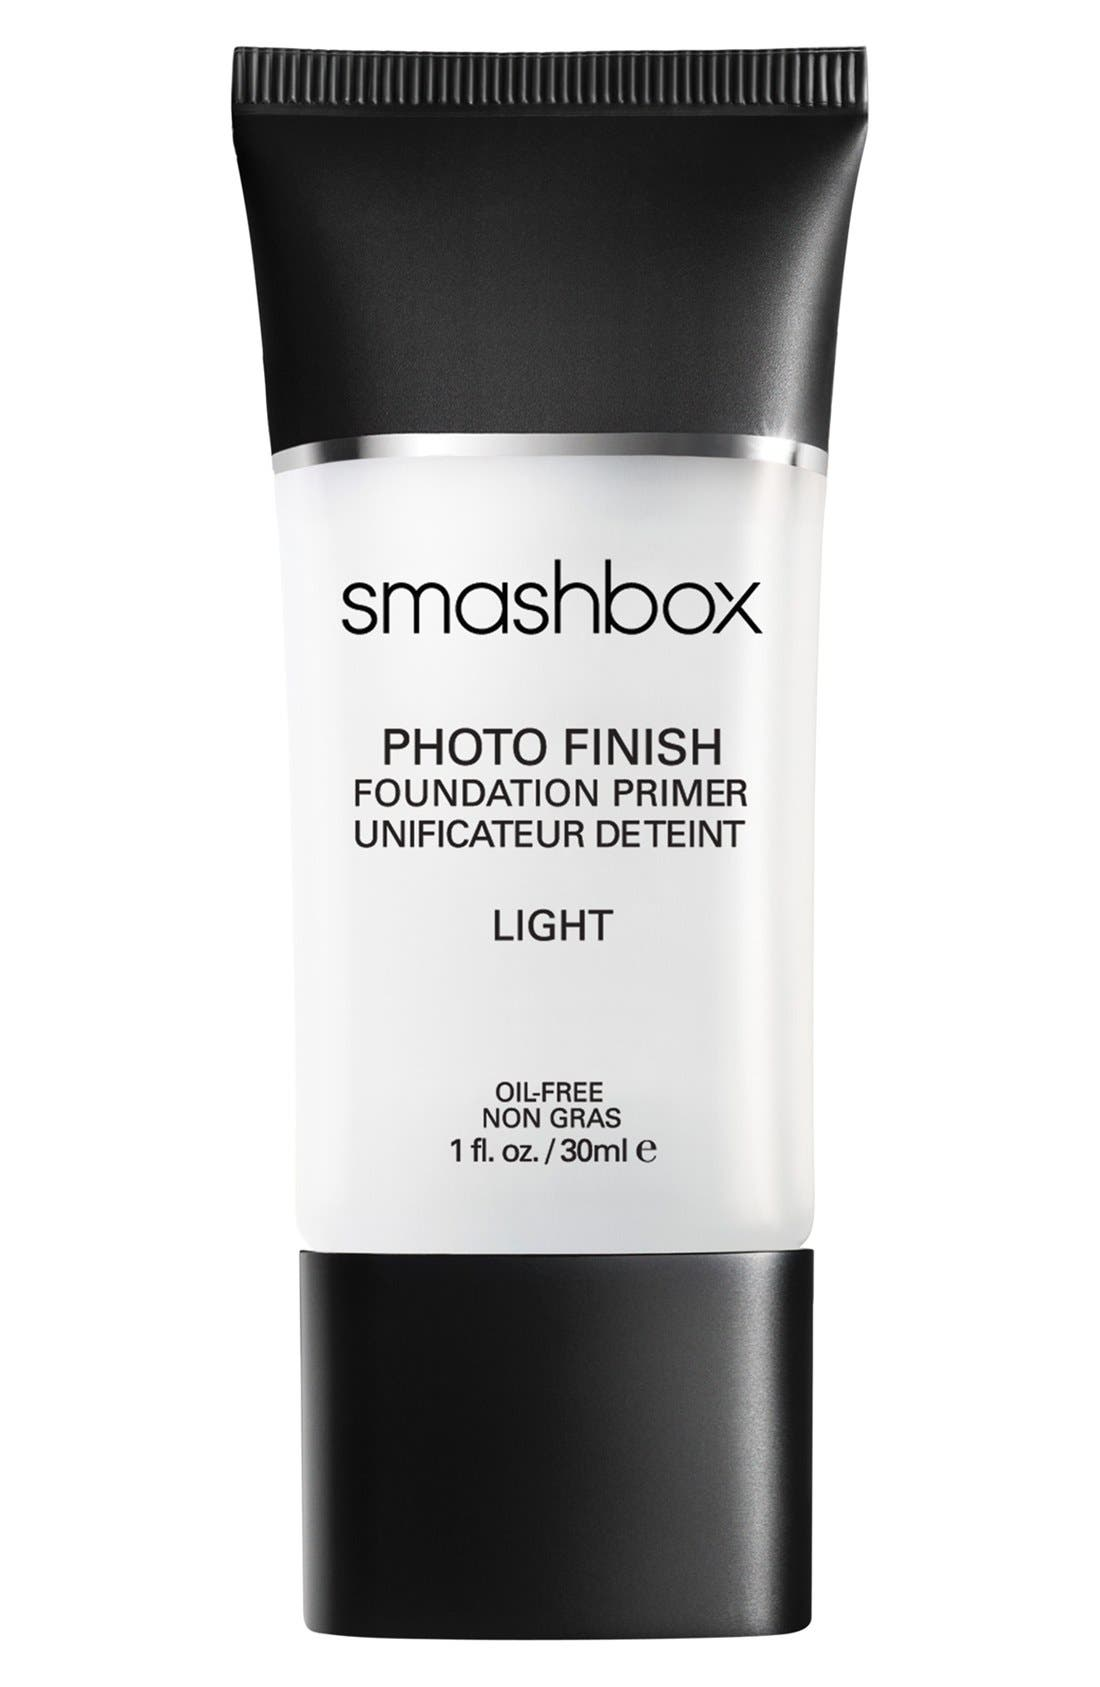 Smashbox Photo Finish Light Foundation Primer